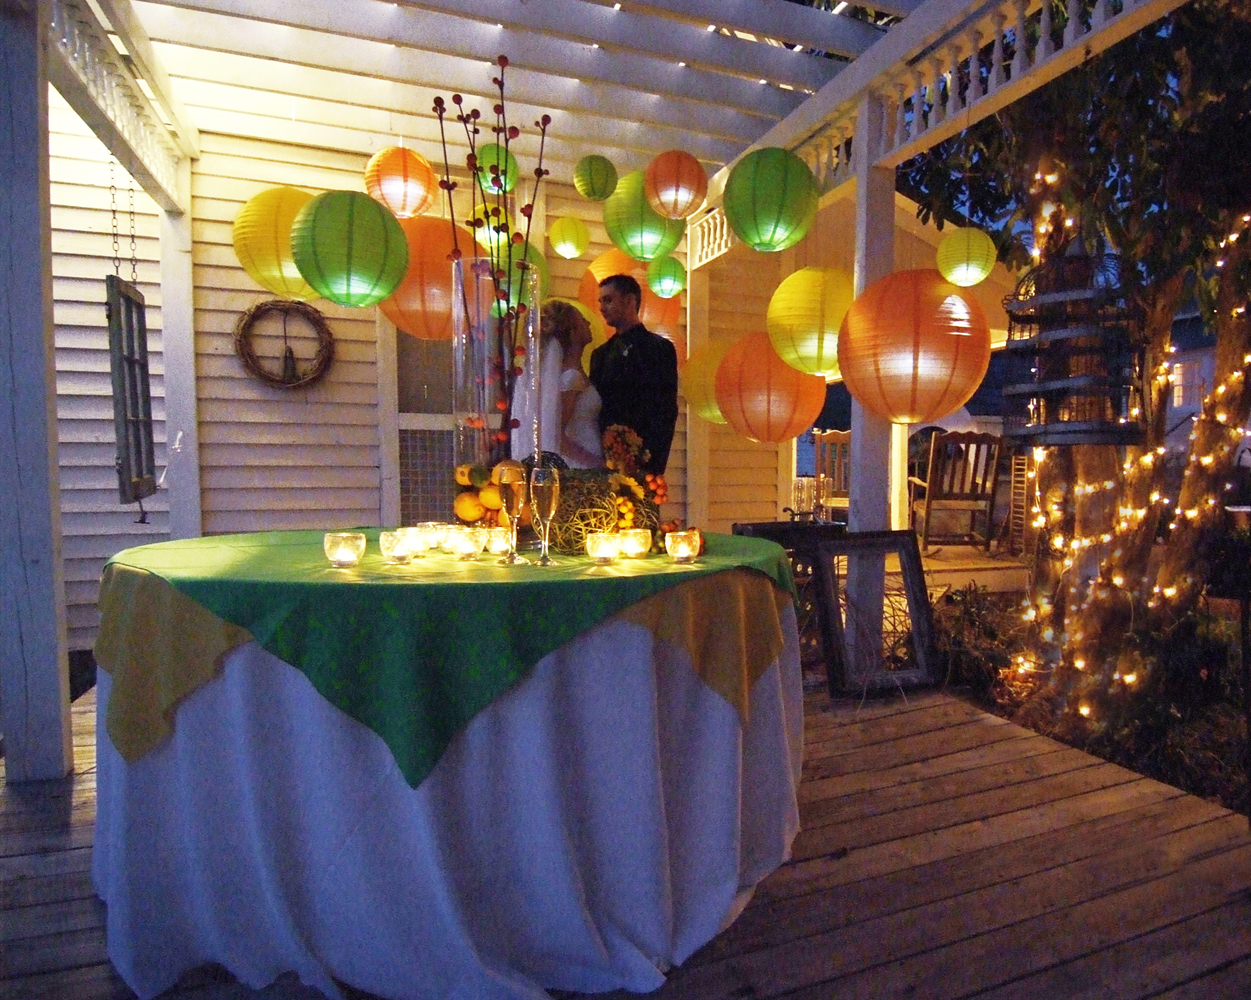 Reception, Flowers & Decor, Paper, orange, Lime, Lanterns, Courtyard, Lemon, Washington, Inn, Paper lanterns, Washington grass inn